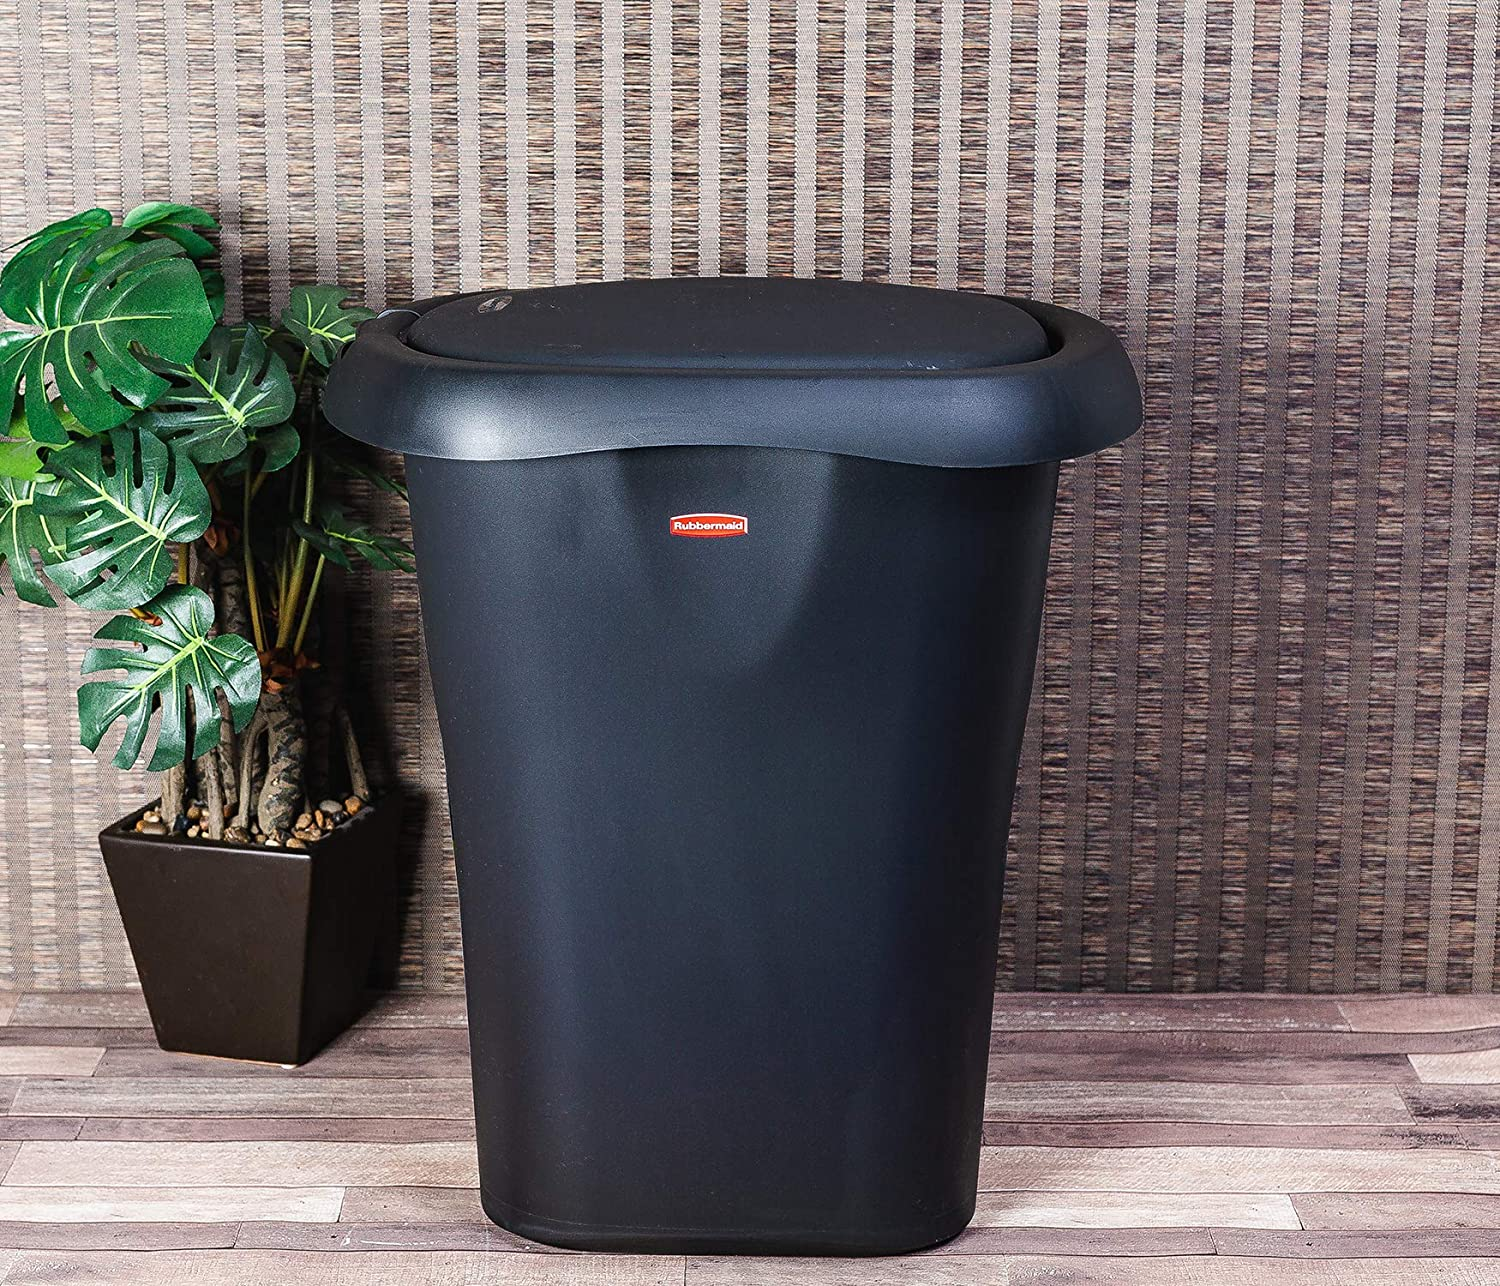 Rubbermaid Spring-Top Lid Trash Can for Home, Kitchen, and Bathroom Garbage, 8 Gallon, Black